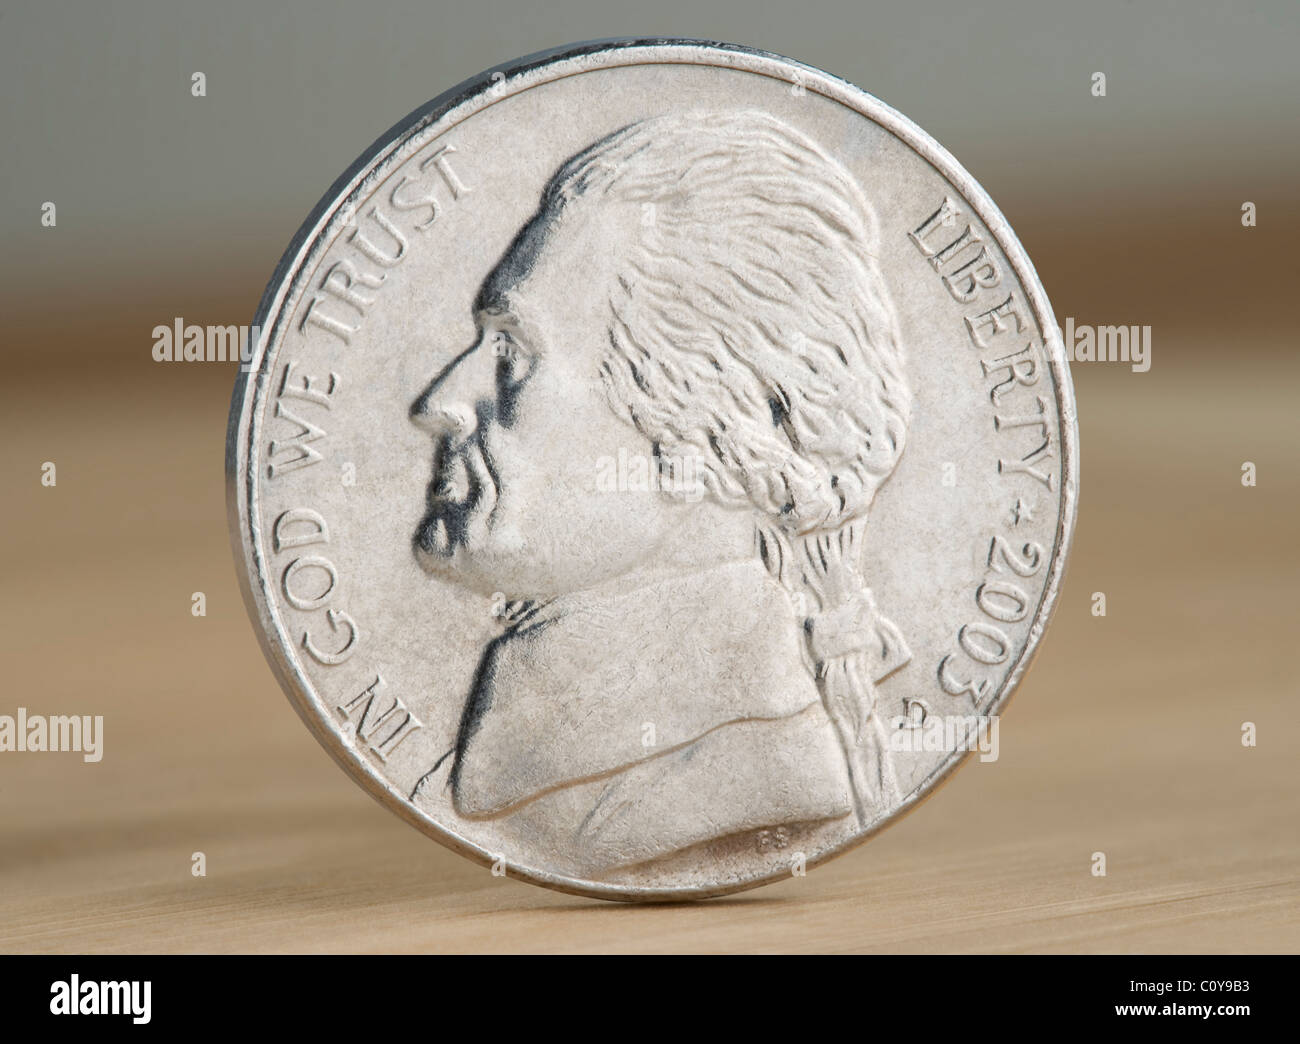 2010 US nickel coin. The face value of 5 cents is now less than the value of the metals in the coin. - Stock Image